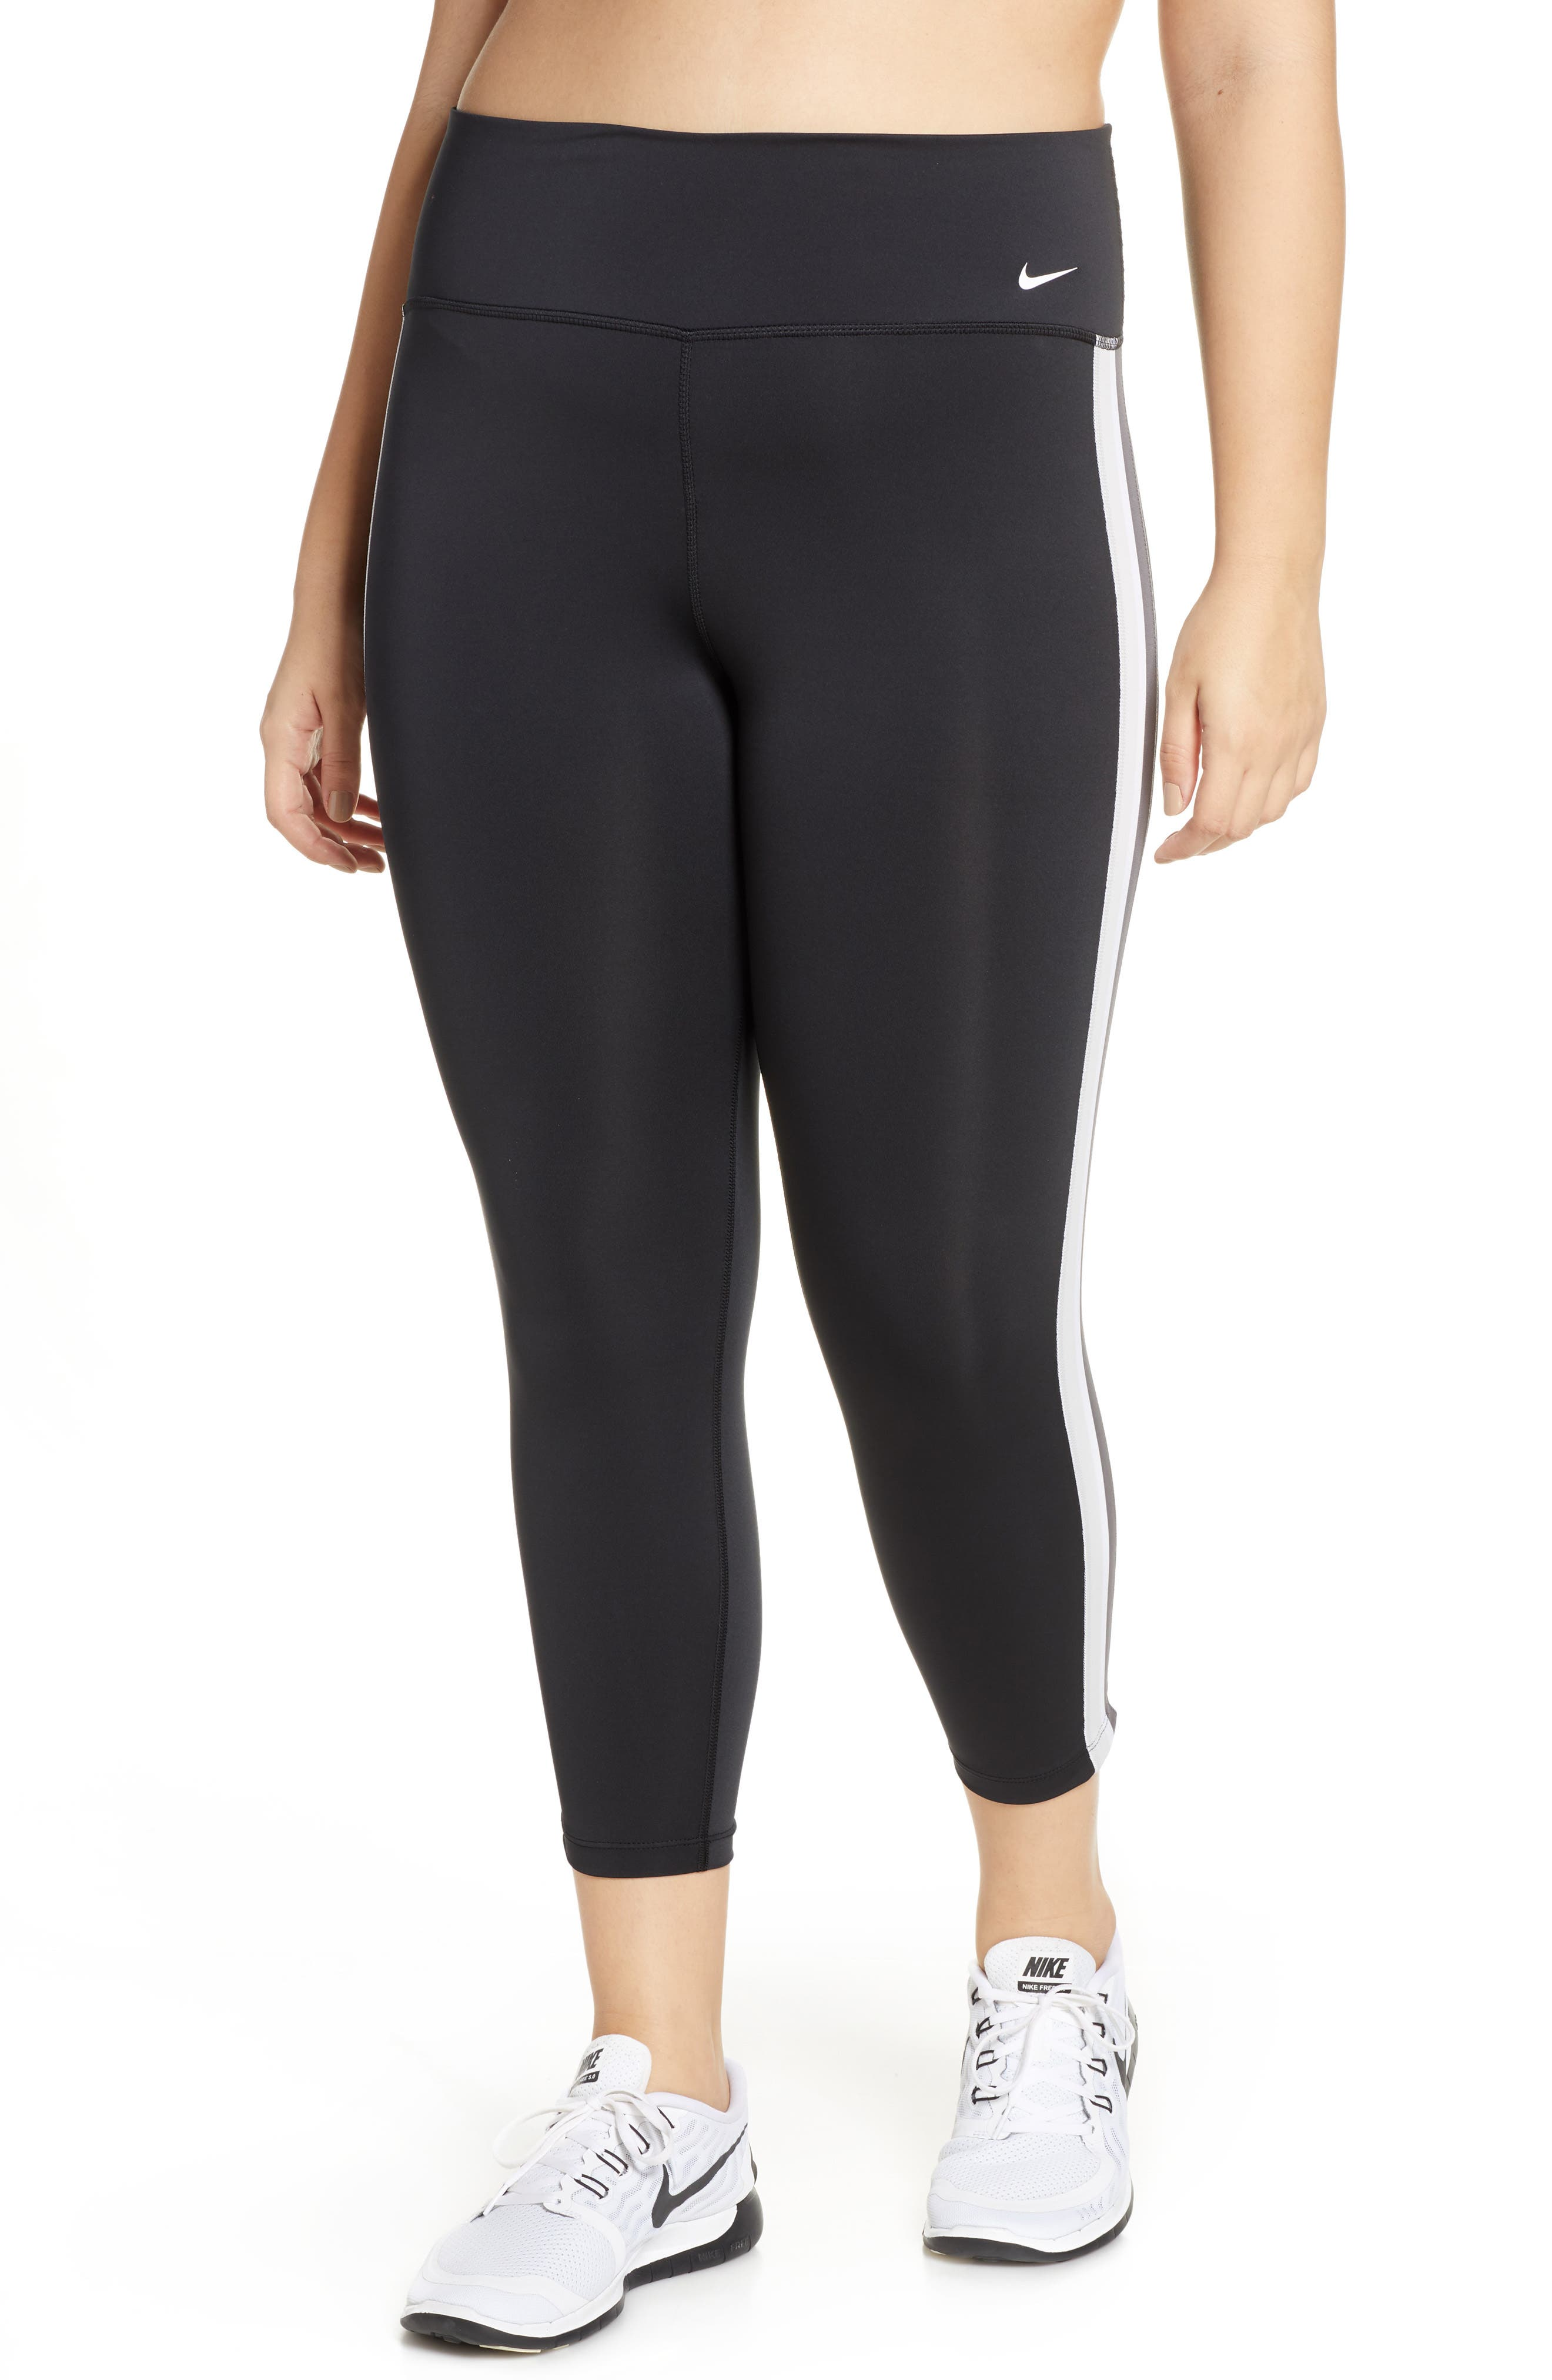 07fa535cdff2 Women's Leggings New Arrivals: Clothing, Shoes & Beauty | Nordstrom